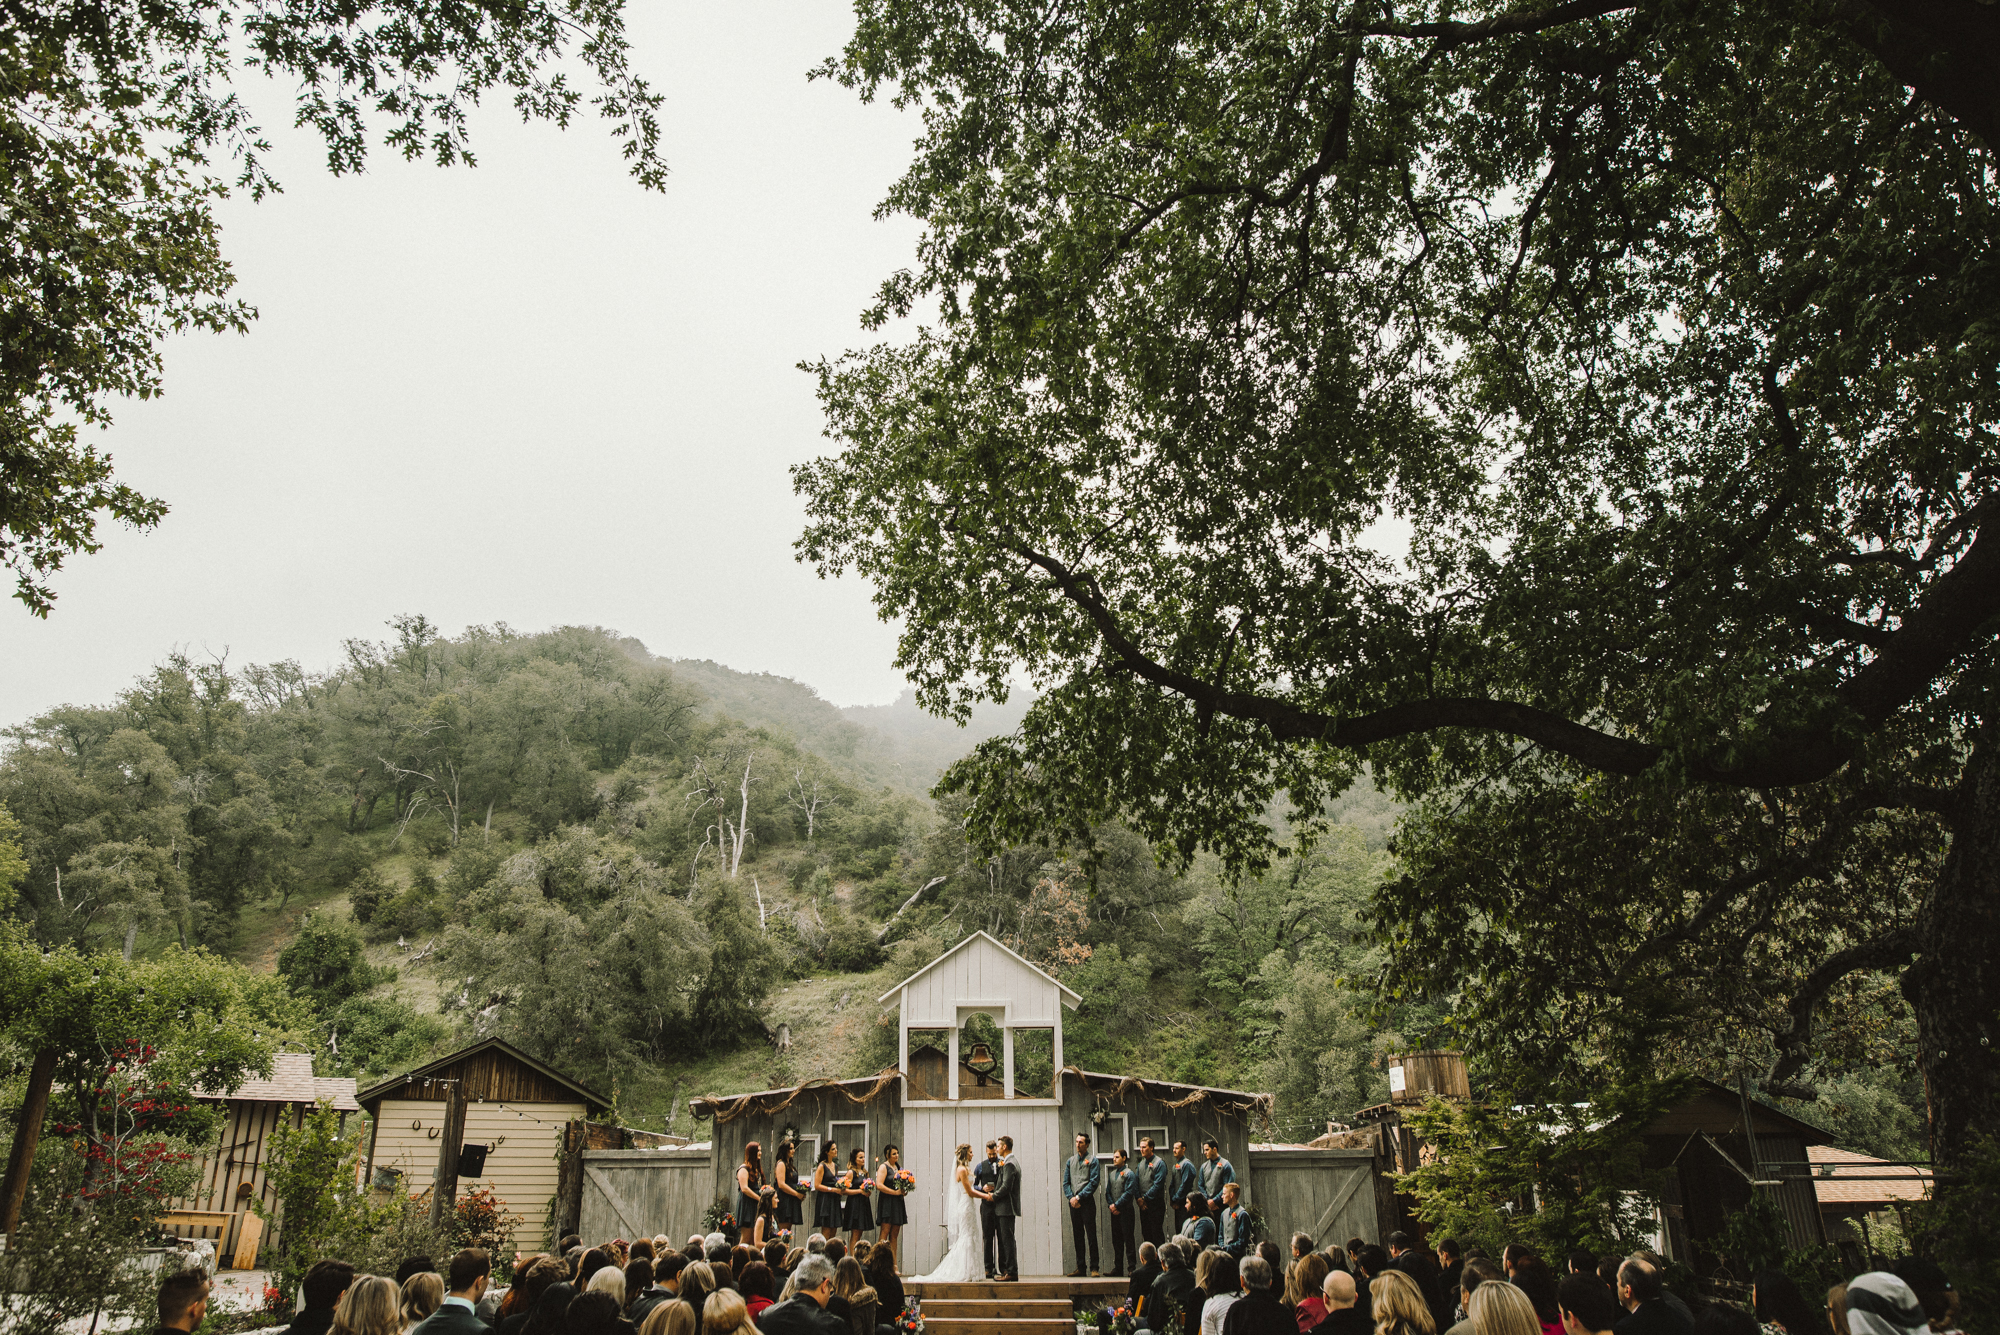 Isaiah & Taylor Photography - Los Angeles - Destination Wedding Photographers - Oak Glen Wilshire Ranch Foggy Forest Wedding-60.jpg